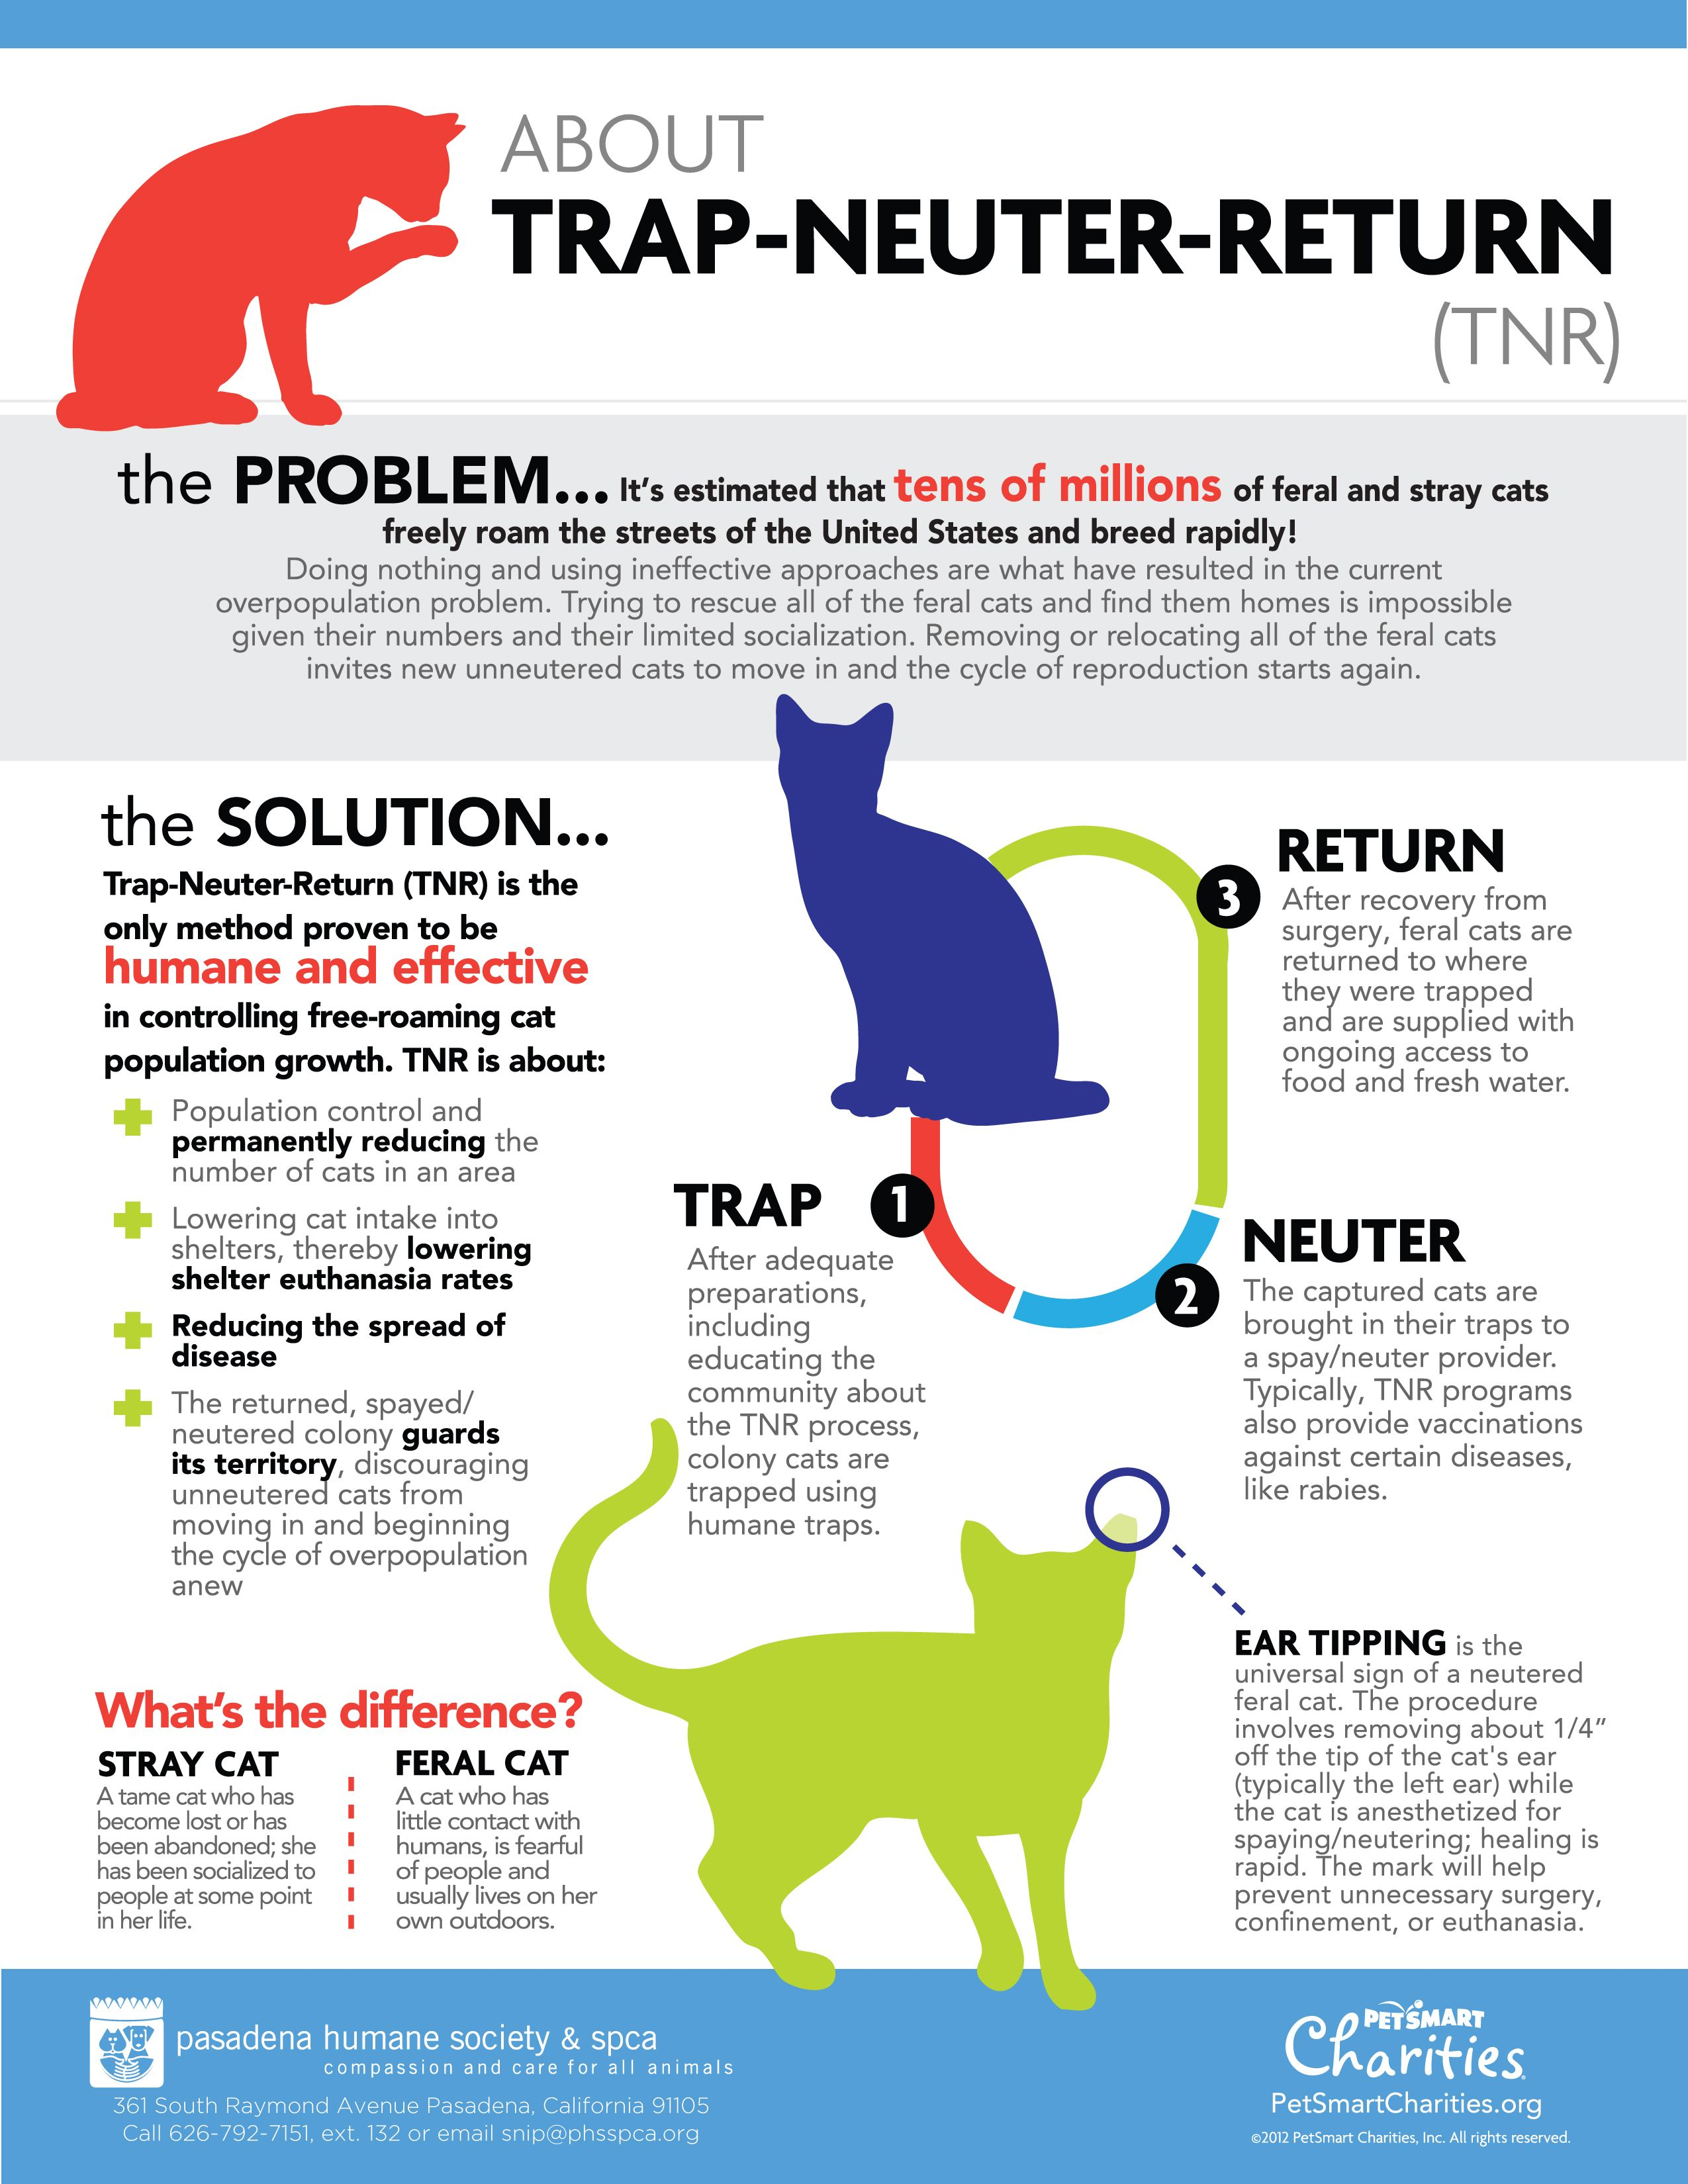 About Trap Neuter Return Tnr For Feral Cats Contact Our Snip Coordinator For More Information At Snip Phsspca Org Feral Cats Cat Day Stray Cat